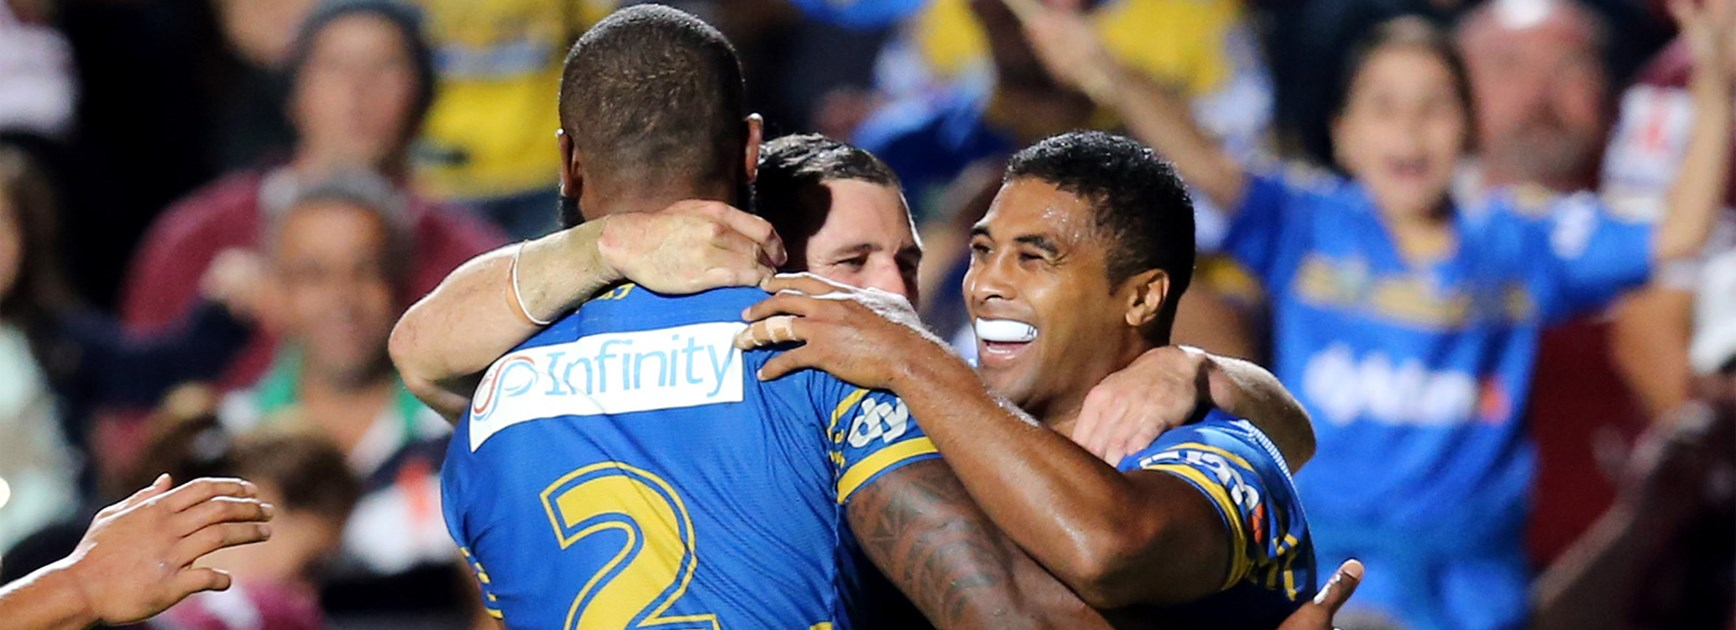 The Eels celebrate Michael Jennings' second try in his 200th NRL game.